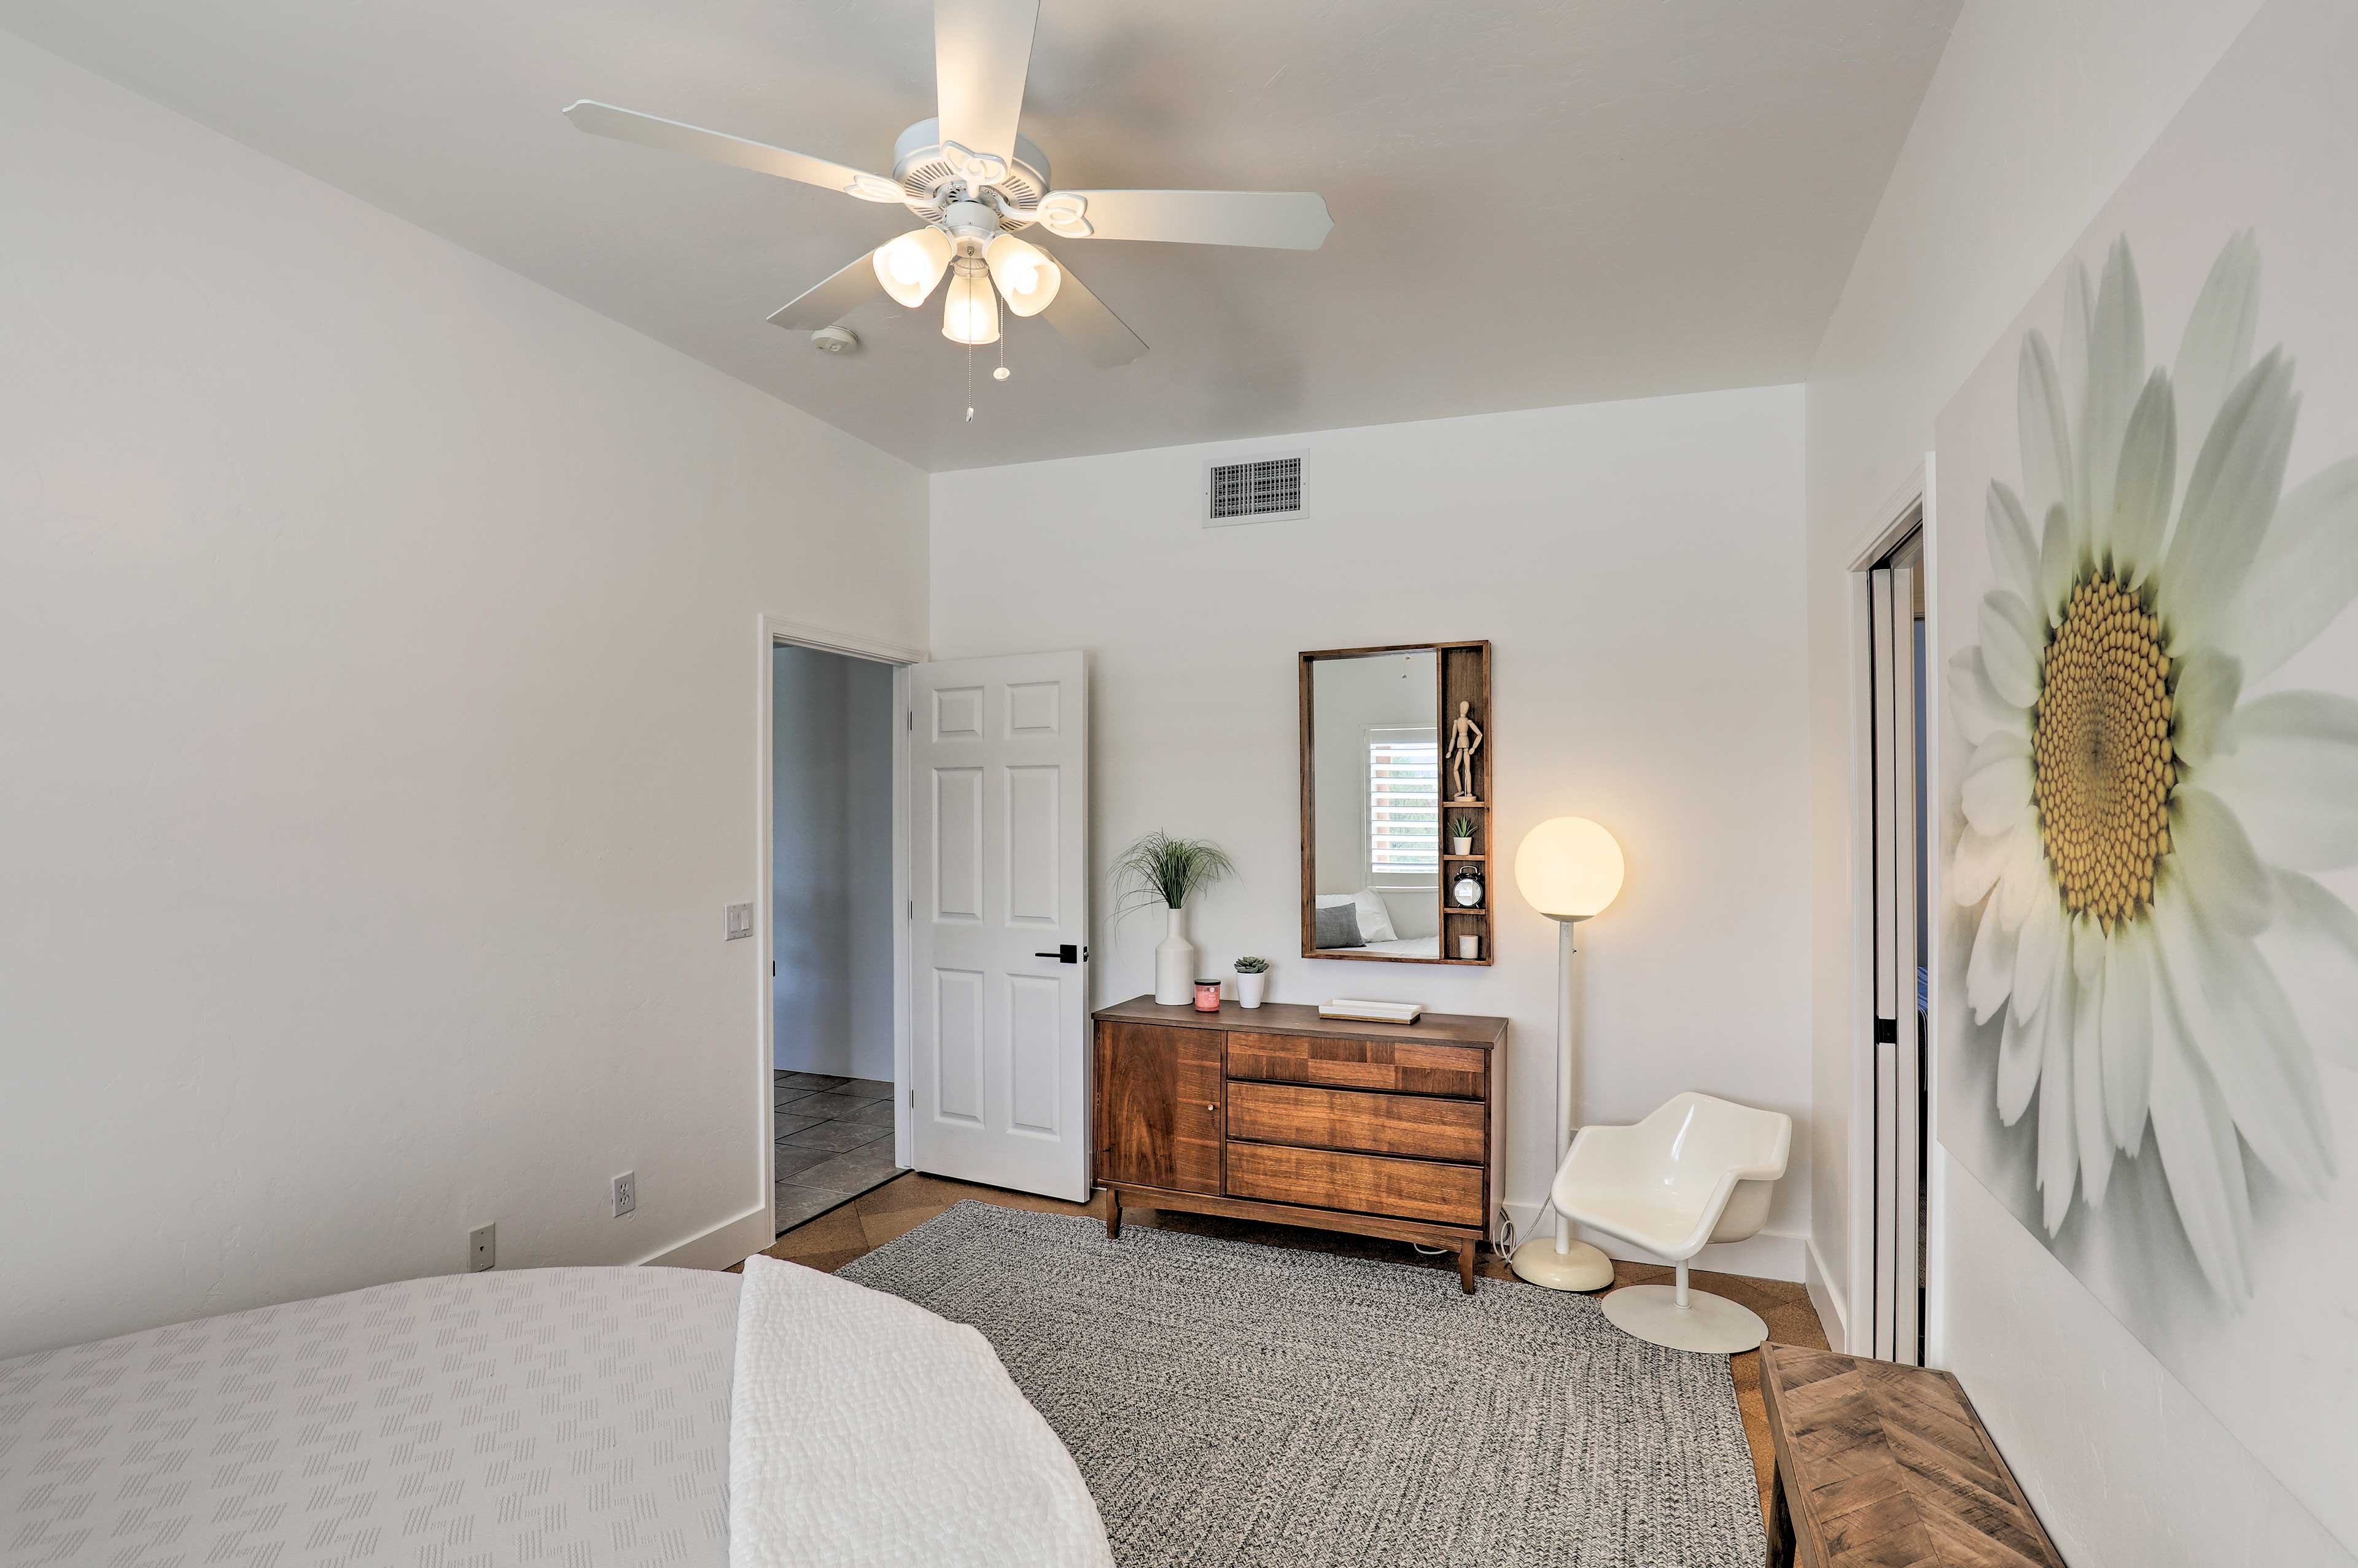 The bathroom is connected to this bedroom en-suite style.